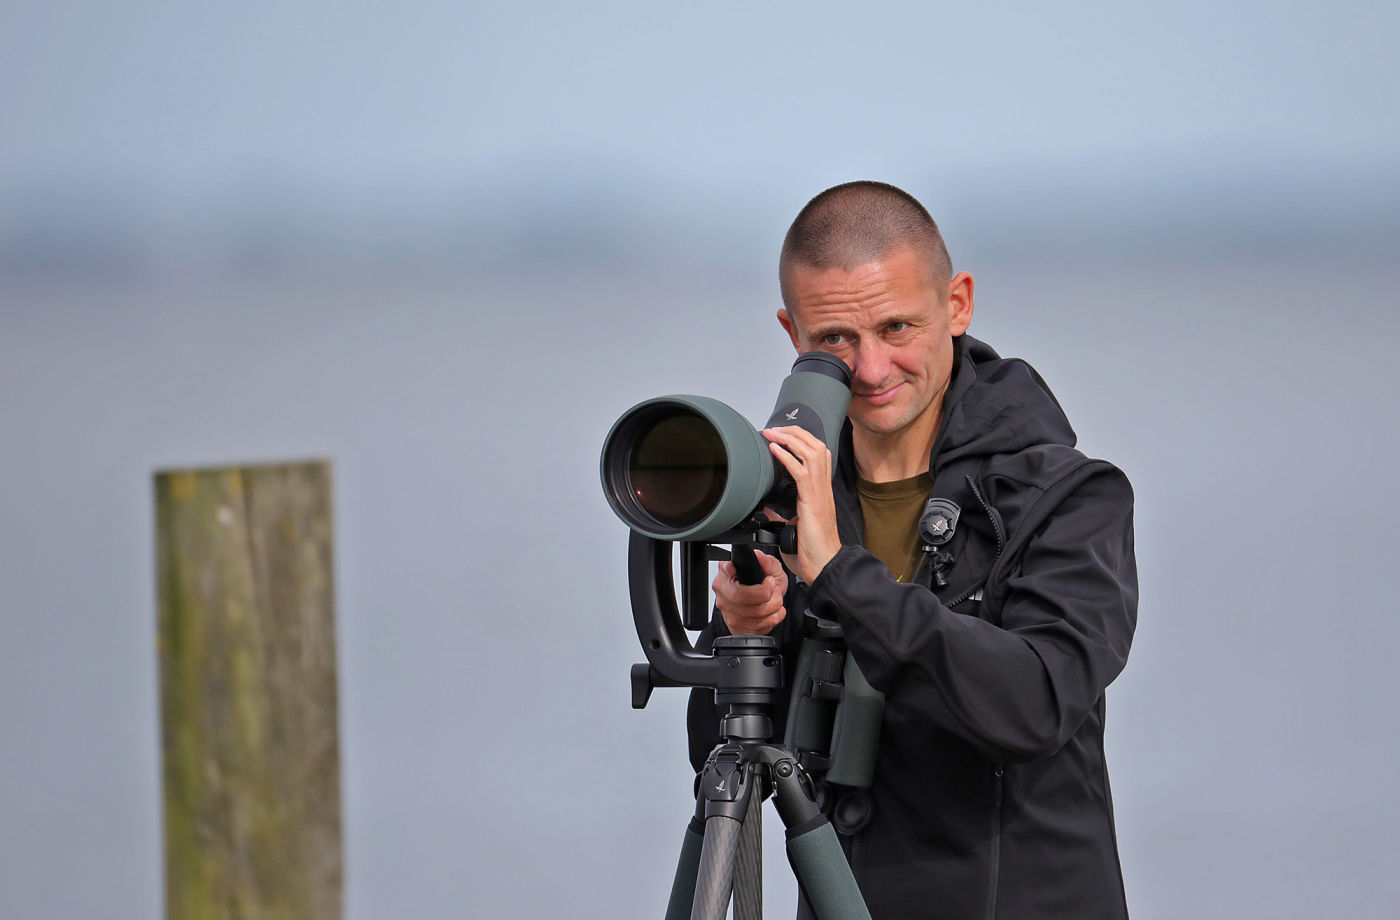 A joint adventure: Mark and Nils seawatching with the SWAROVSKI OPTIK 115-mm objective module - Mark Collier went birding on the Dutch coastline with the ATX 115-mm objective module